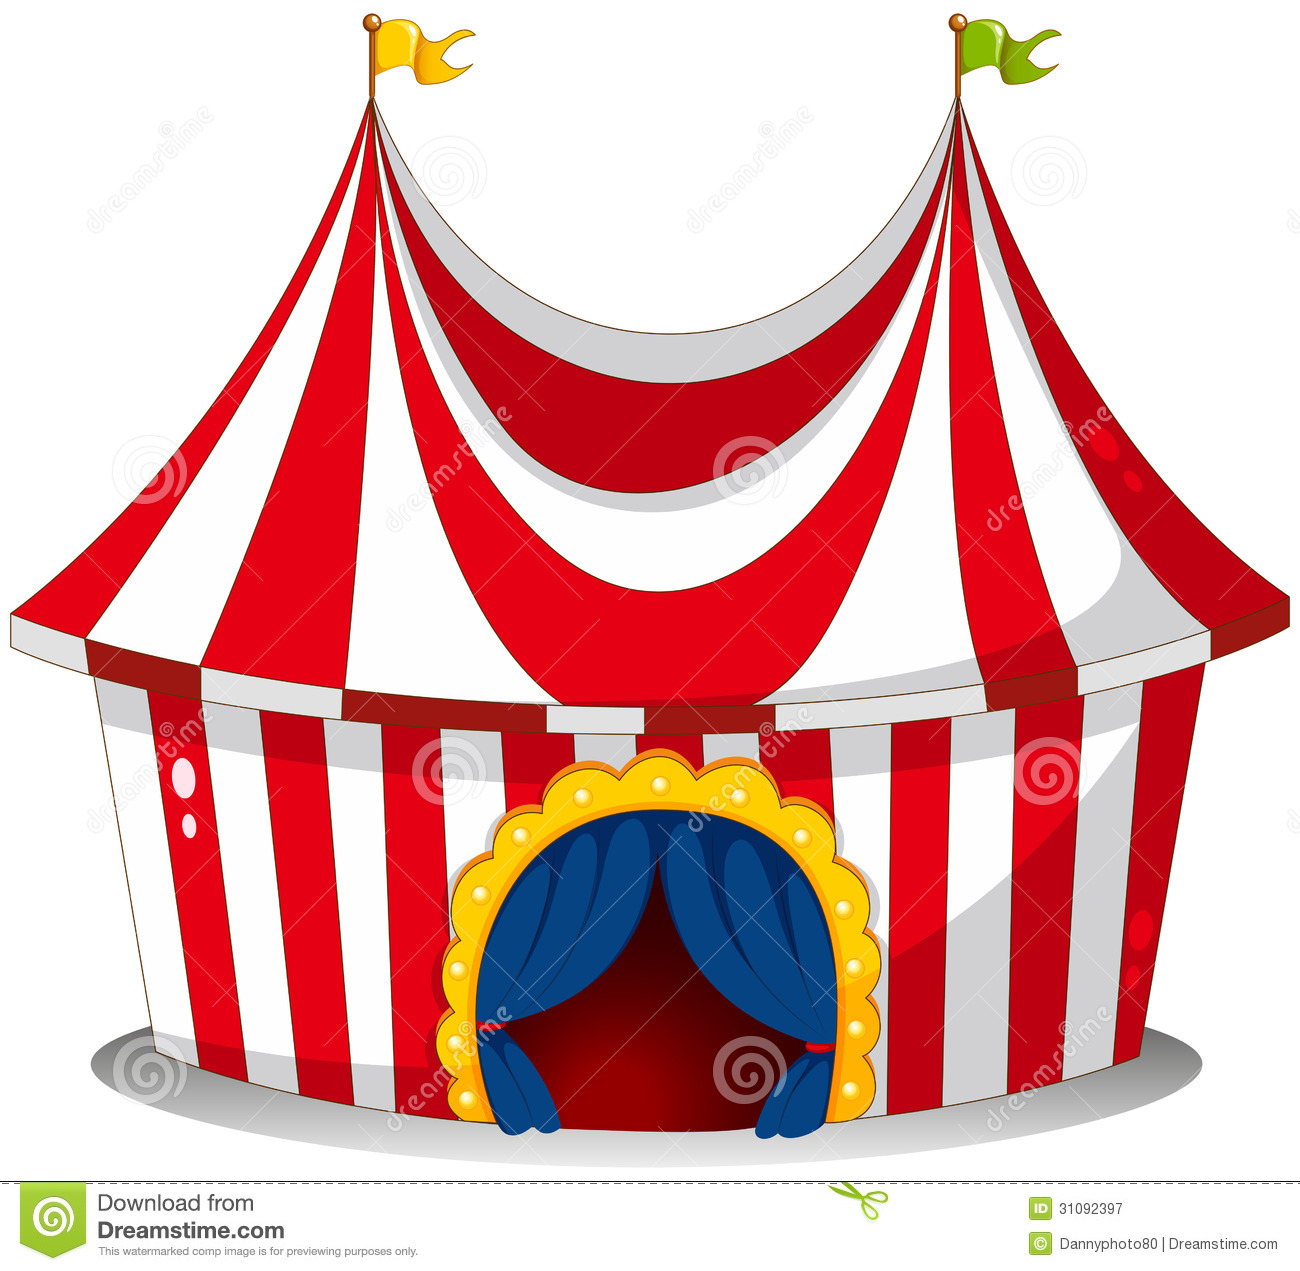 Circus clipart free download banner freeuse Circus Clipart Free Download | Free download best Circus Clipart ... banner freeuse